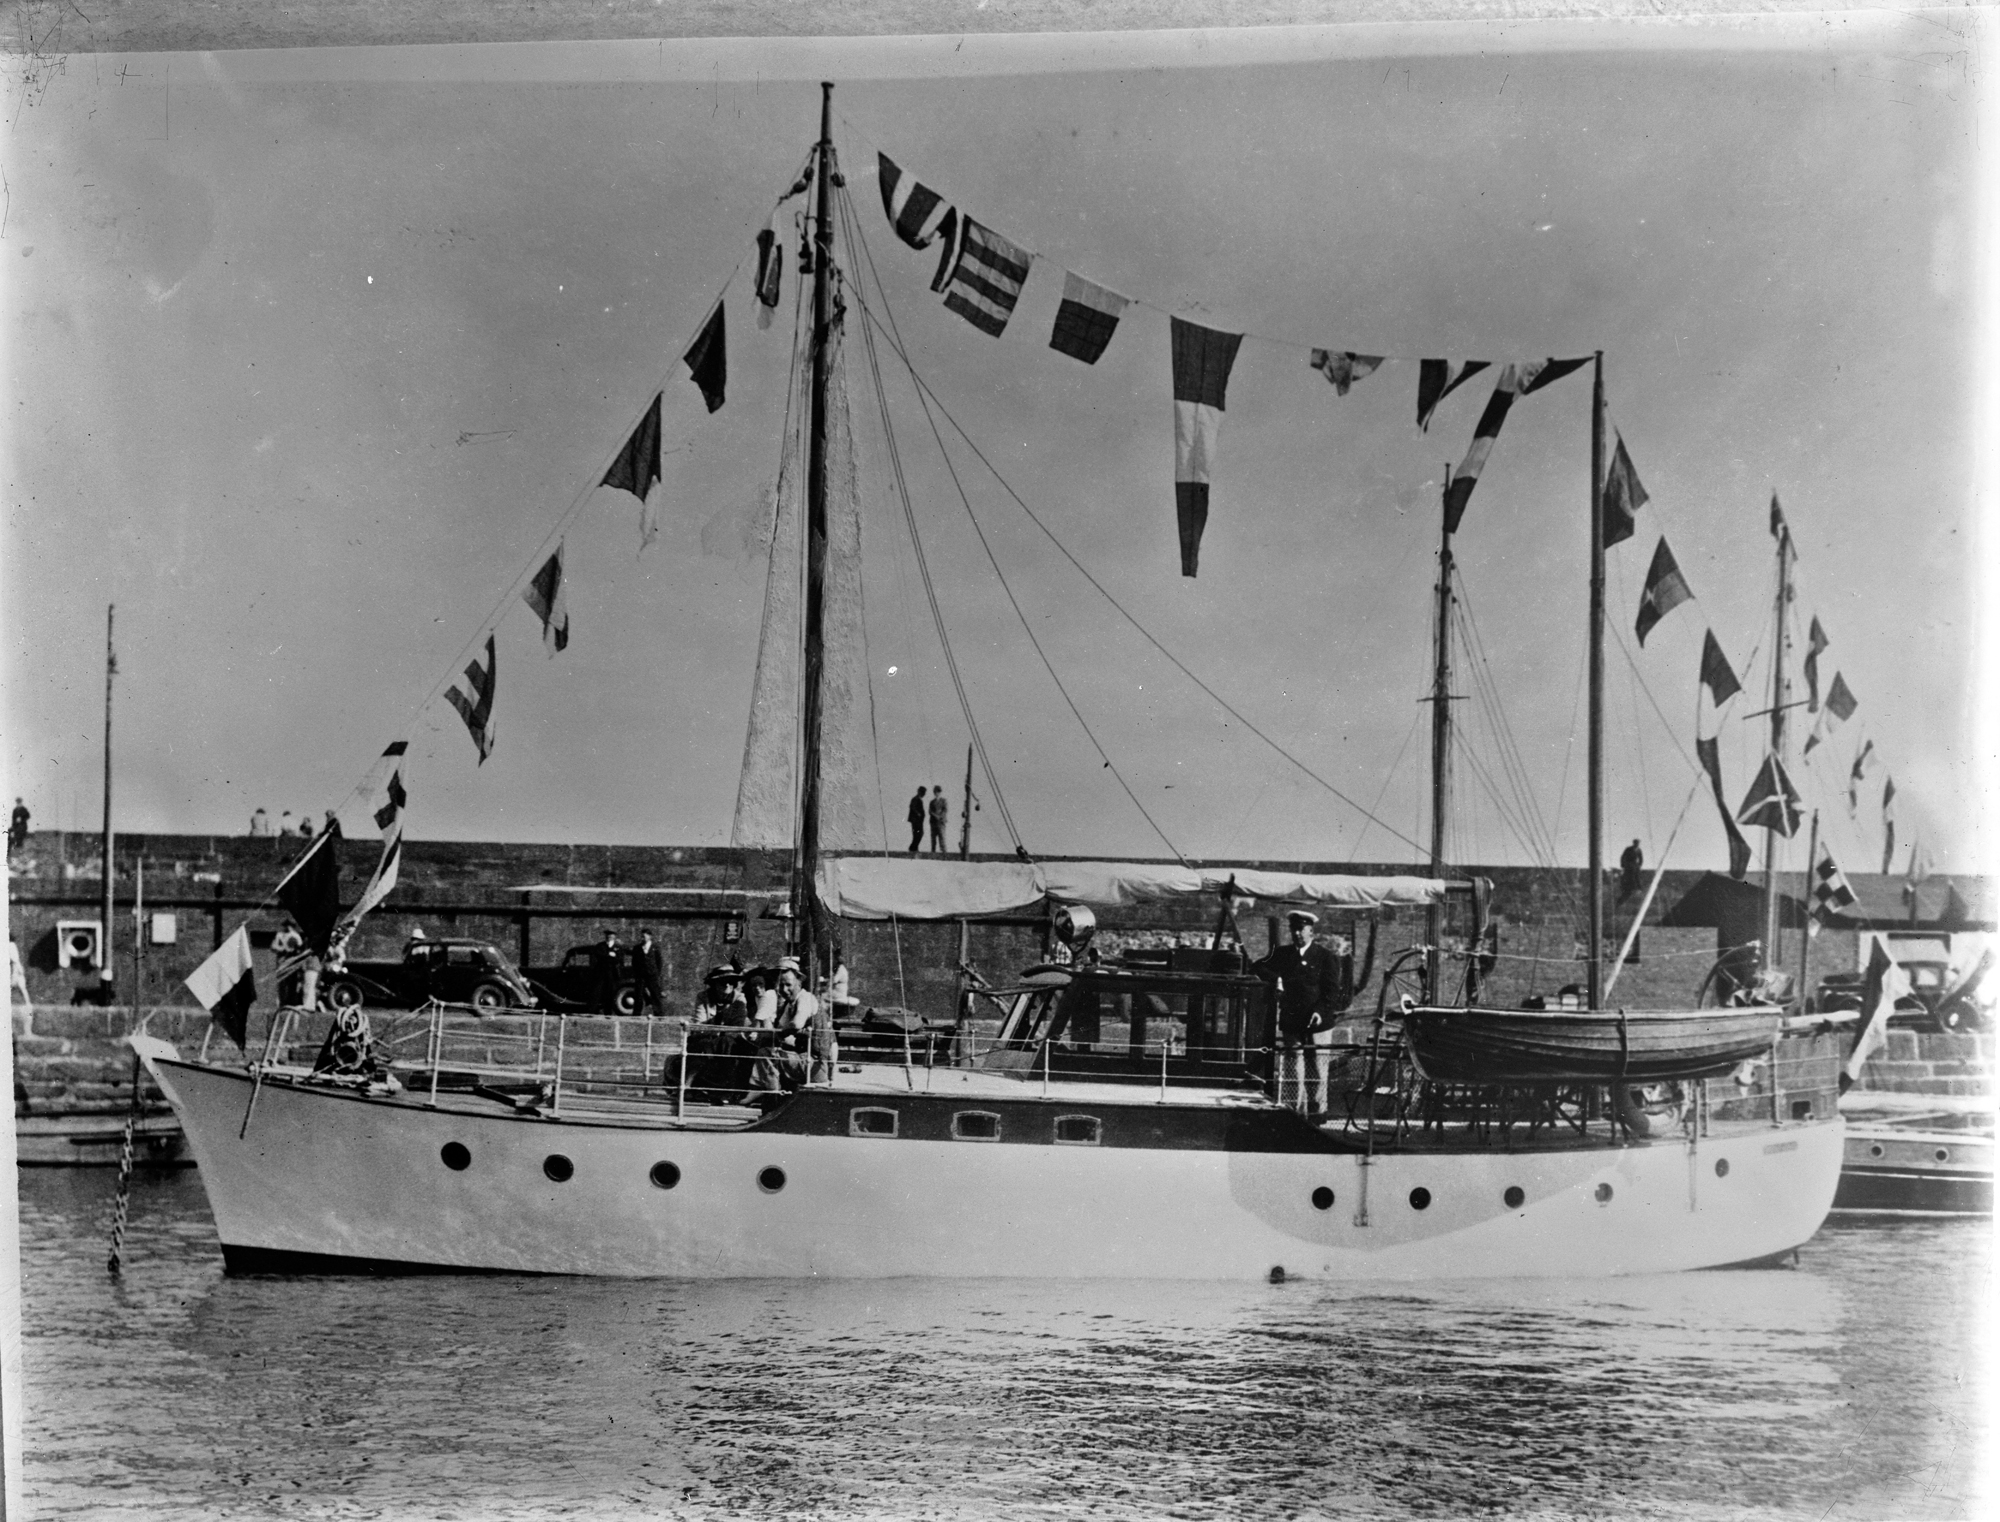 Yacht : commissioned by Mrs. Stanley Lyons, 62 Leinster Road, Rathmines